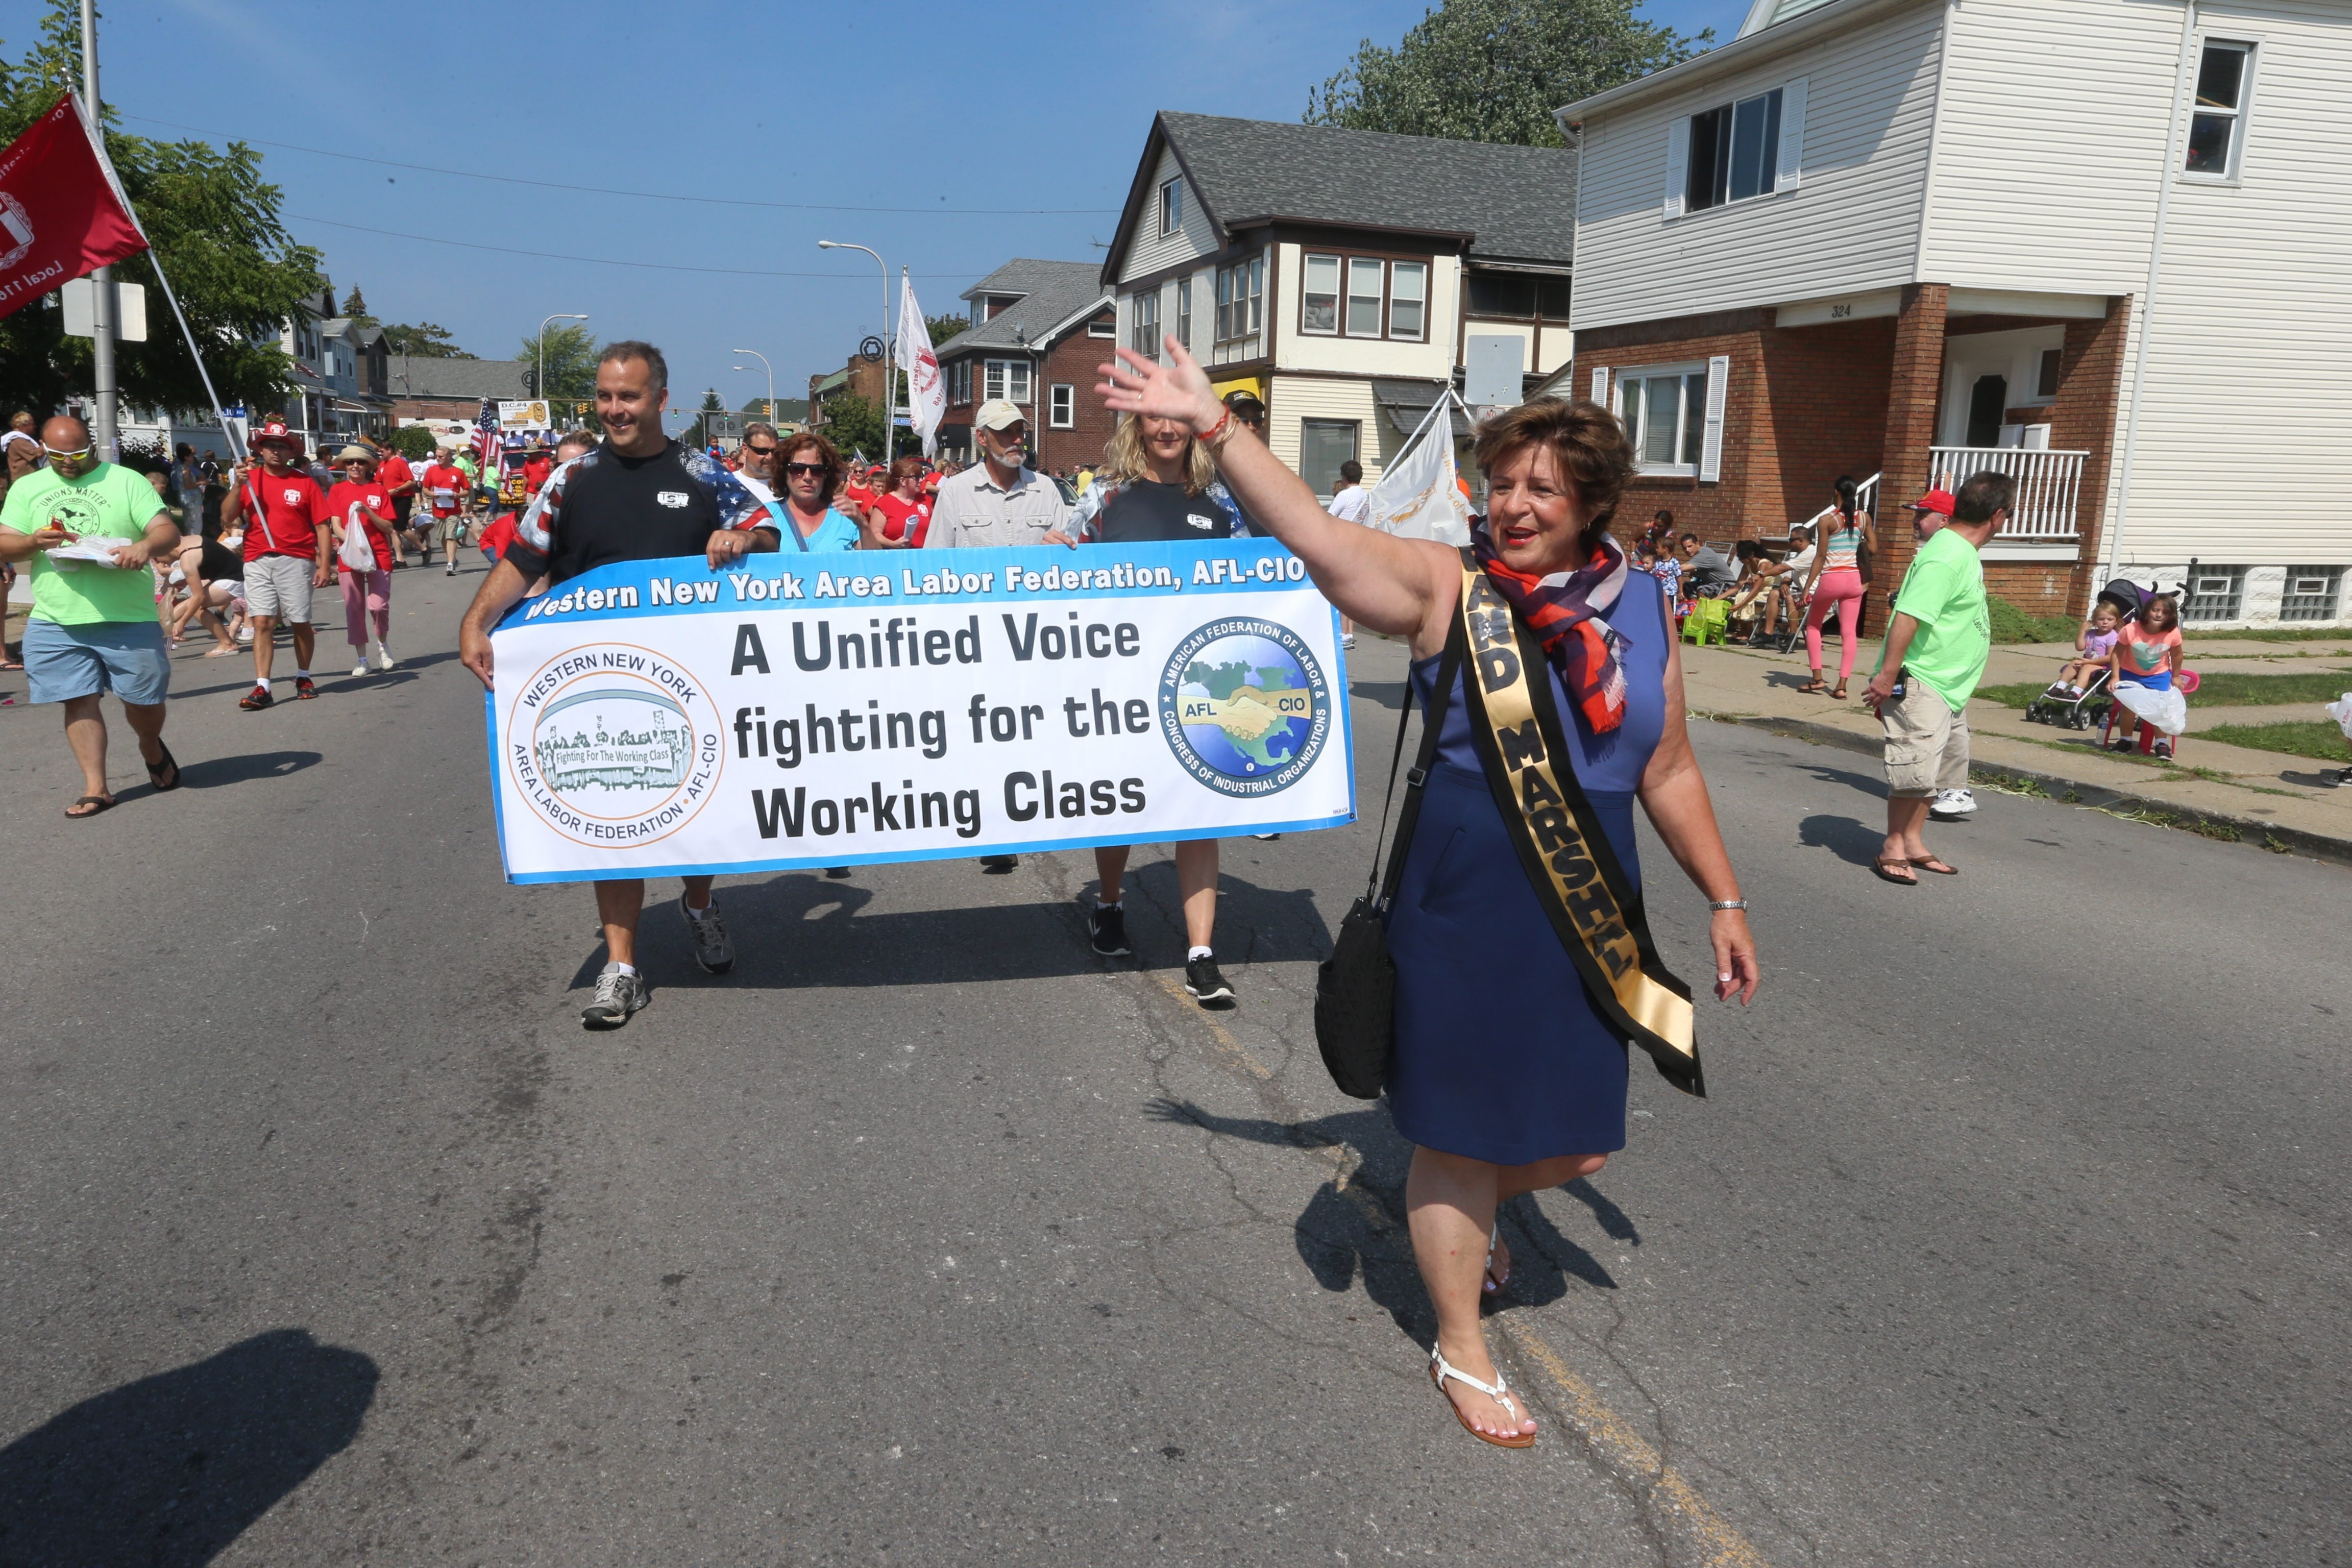 The Buffalo AFL-CIO Council's  Grand Marshal Debbie Hayes, CWA upstate area director, waves to the crowd lining the street as she marches in the annual Labor Day Parade along Abbott Road in South Buffalo on Monday.